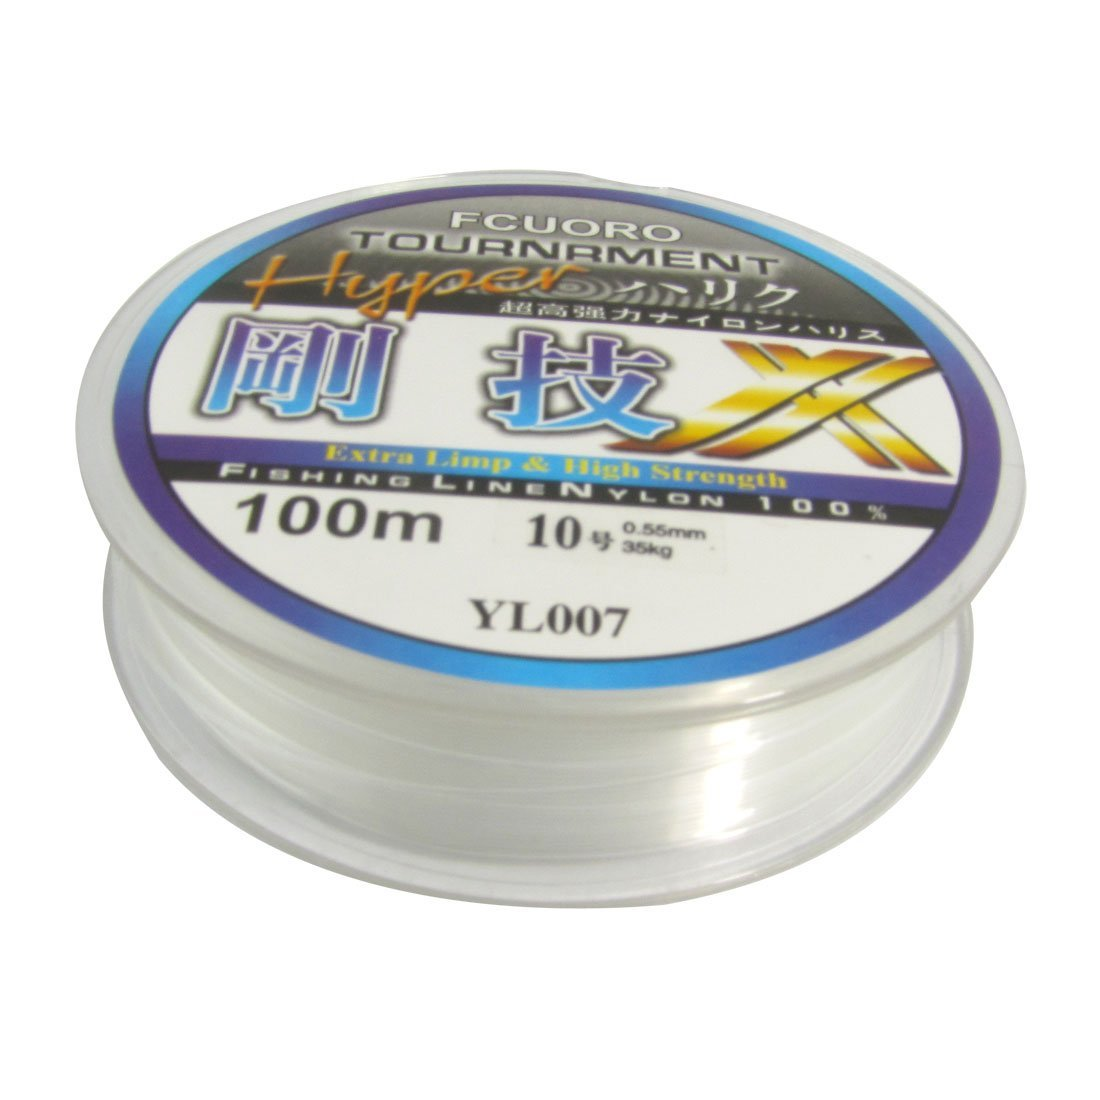 SEWS-100m 0.55mm Diameter Clear Fsing Thread 23Kg 77.1lb Fishing Line Spool